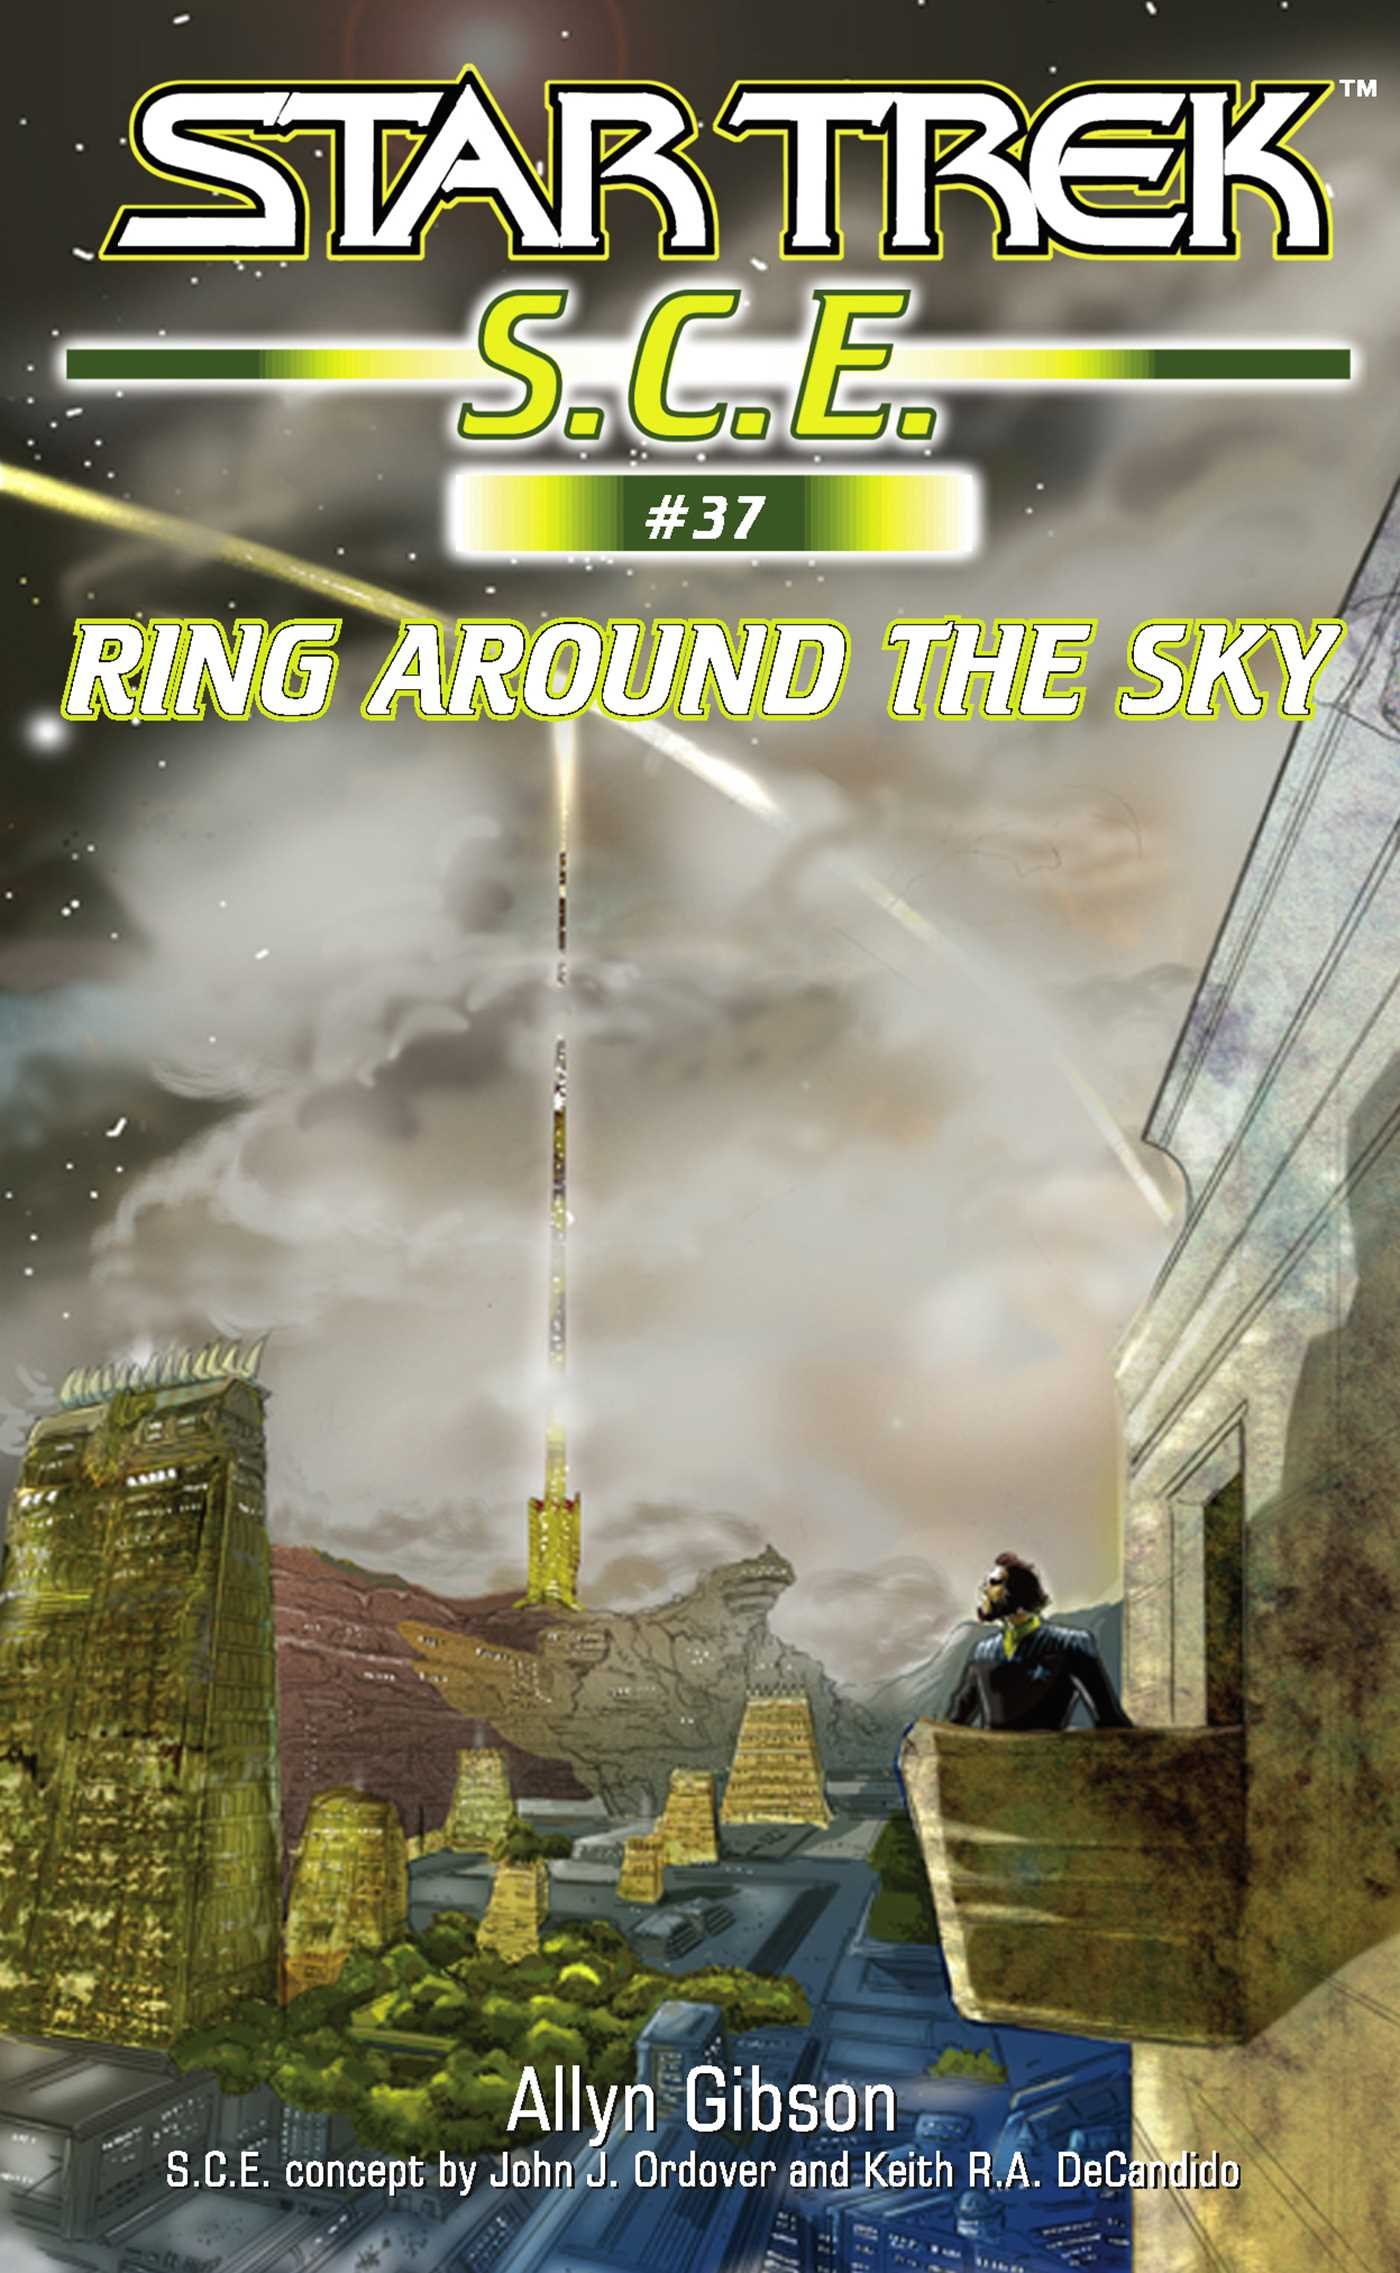 Star trek ring around the sky 9780743476119 hr